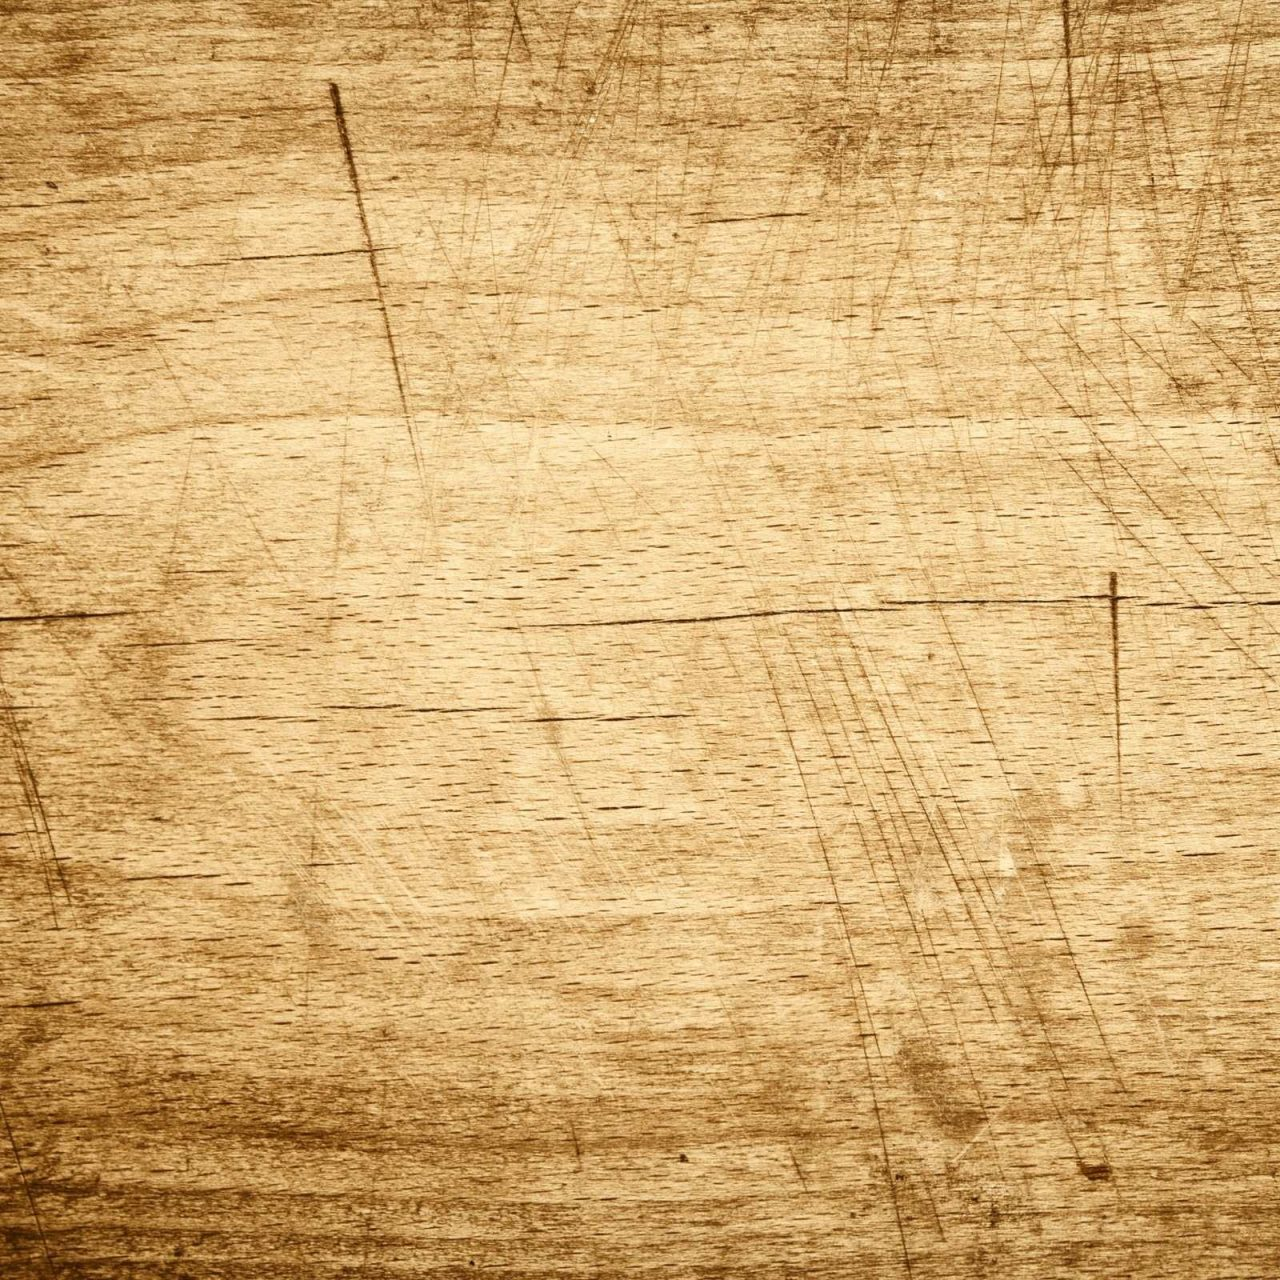 Plain White Wallpaper Iphone X Light Rustic Wood Background Images Hd Wallpapers Hd